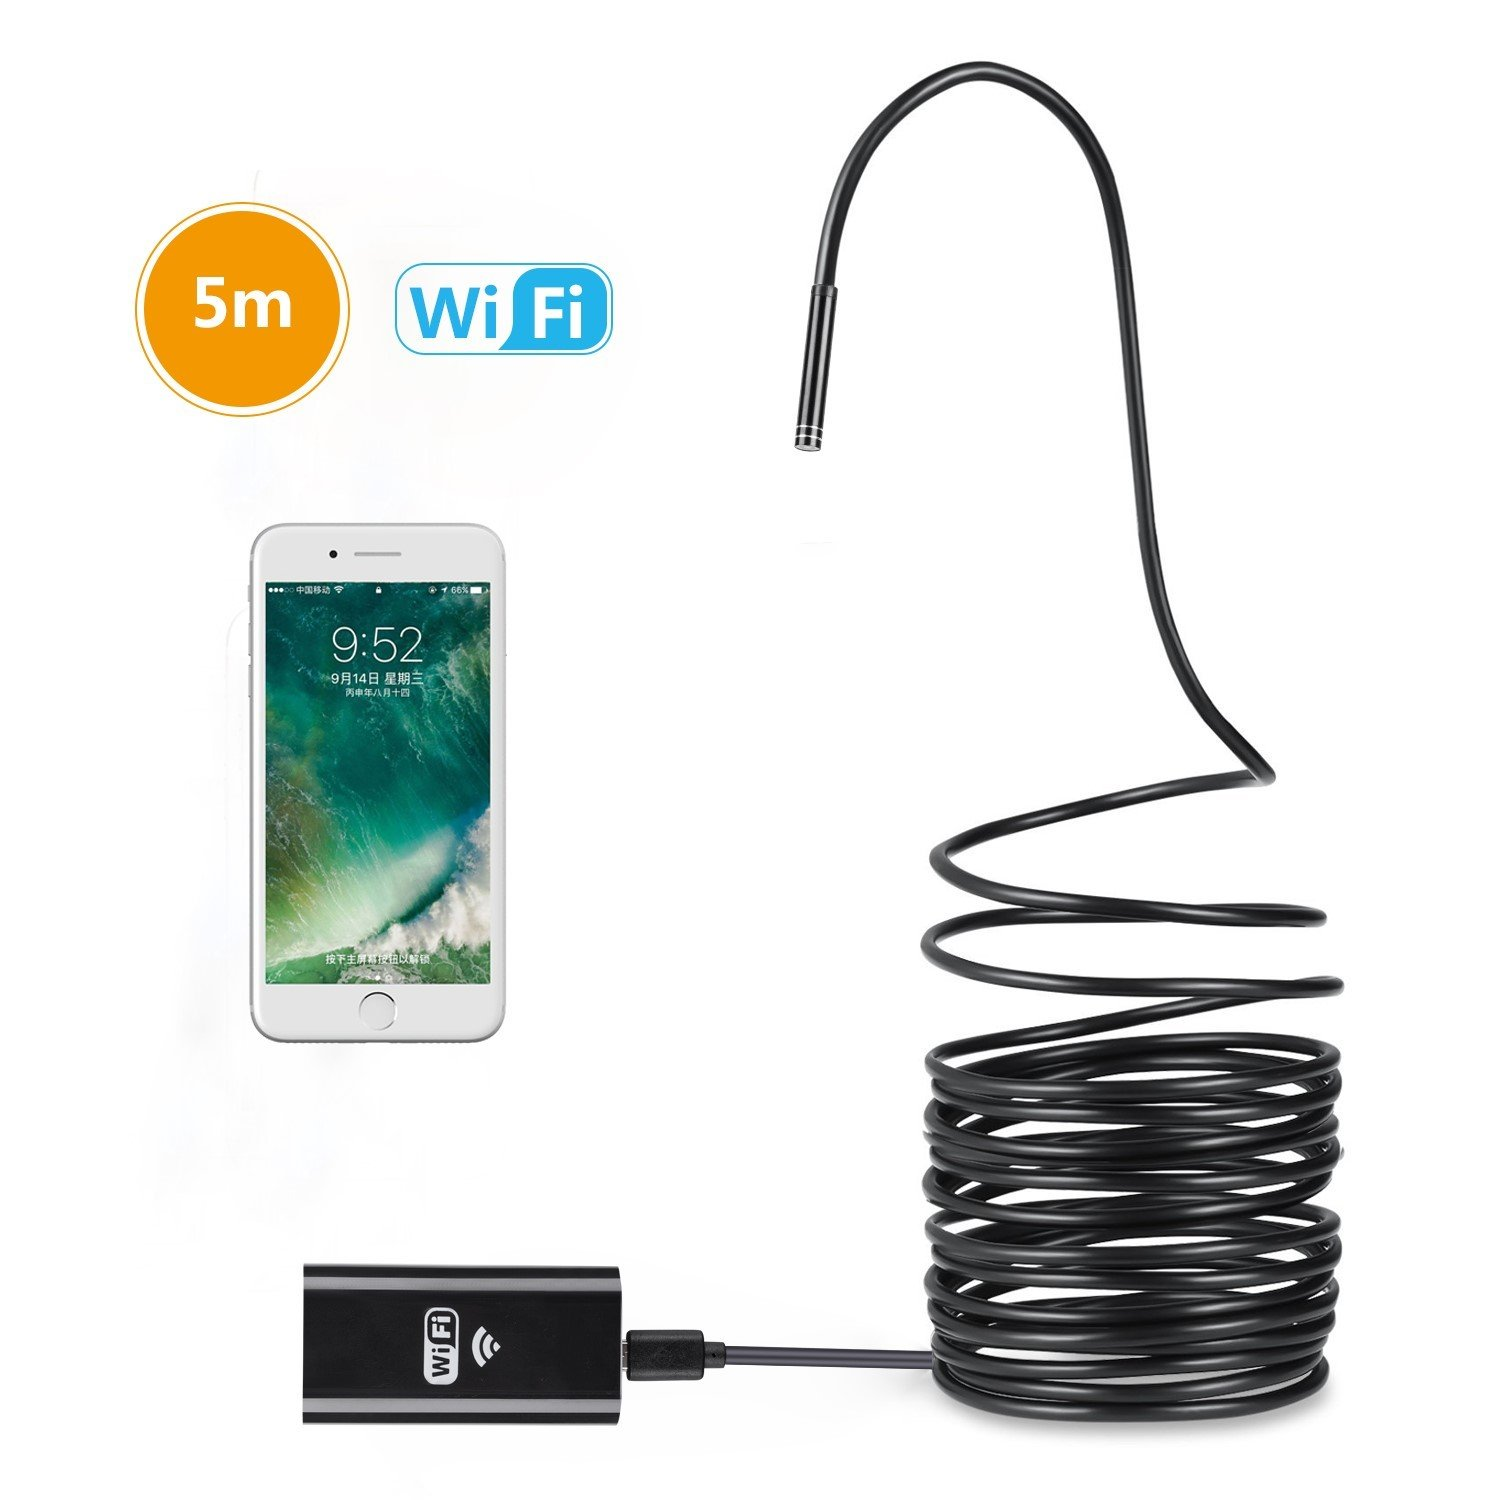 BestTrendy Endoscope Camera, de 5M Endoscope WiFi HD 720P Câ ble Semi Rigide, d'Inspection Camé ra Etanche avec 8 LED Compatible avec iOS/Android/iPad/Mac/PC/Laptop de 5M Endoscope WiFi HD 720P Câble Semi Rigide